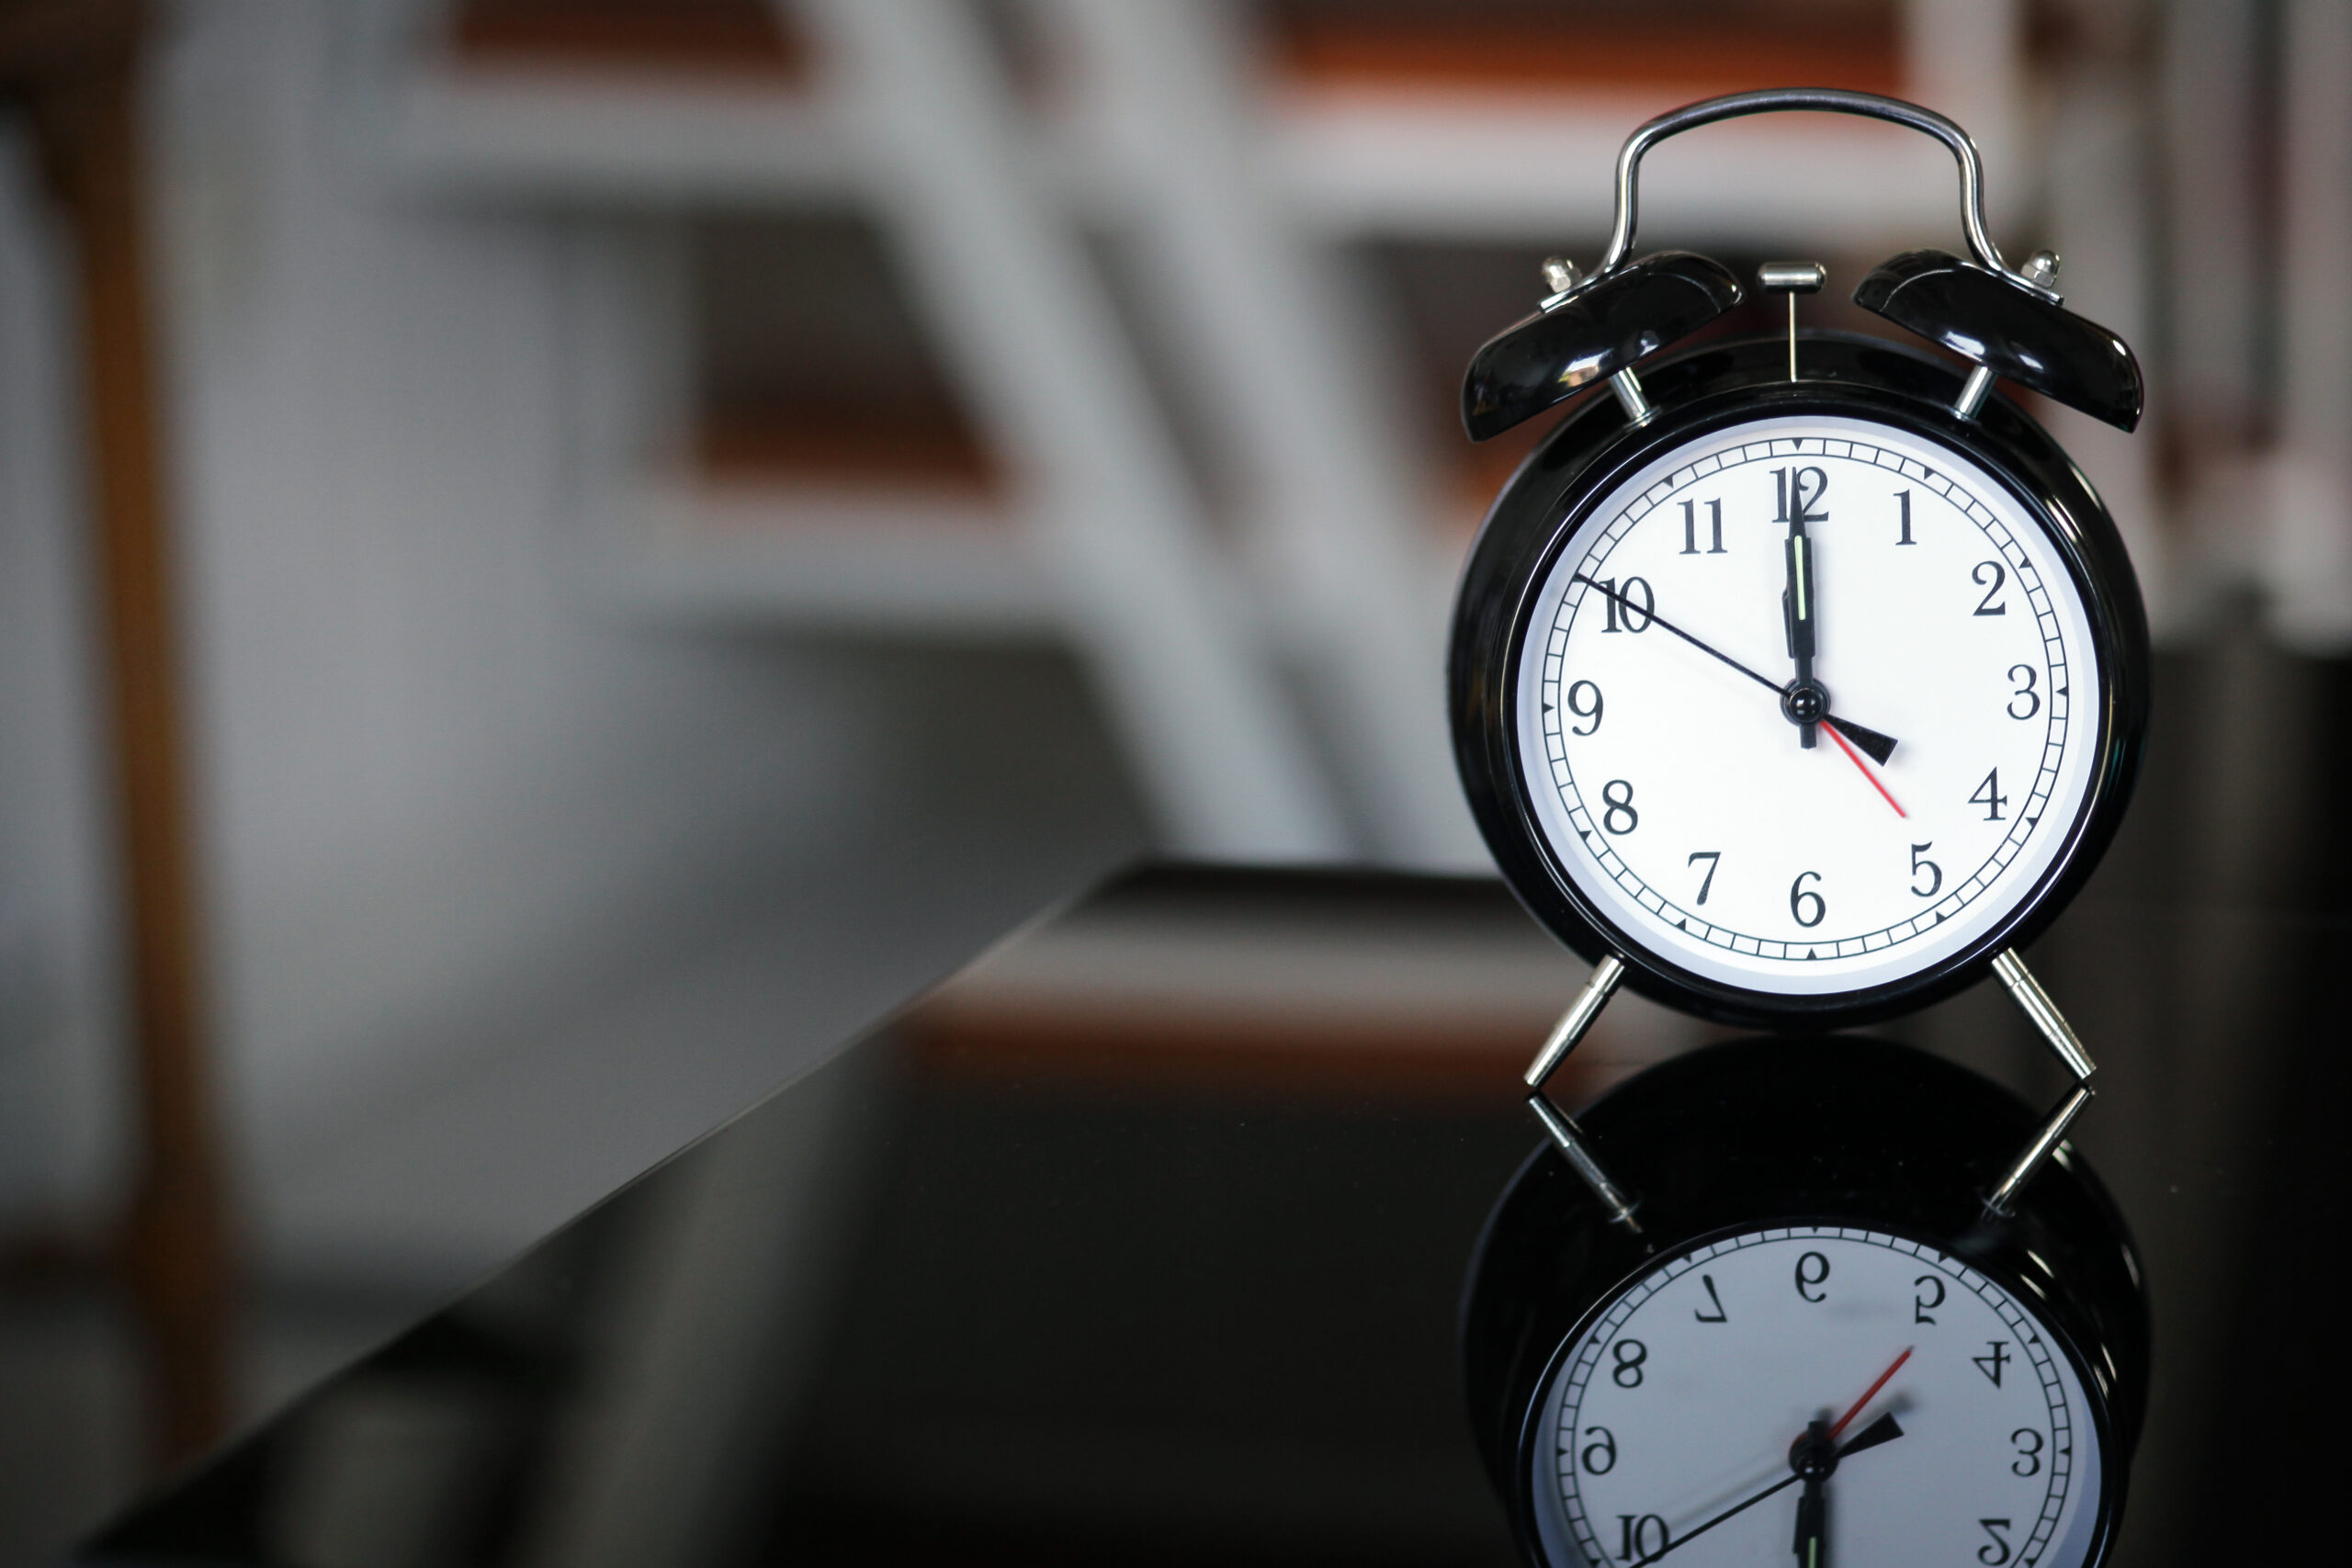 Set a sleep schedule and be consistent.